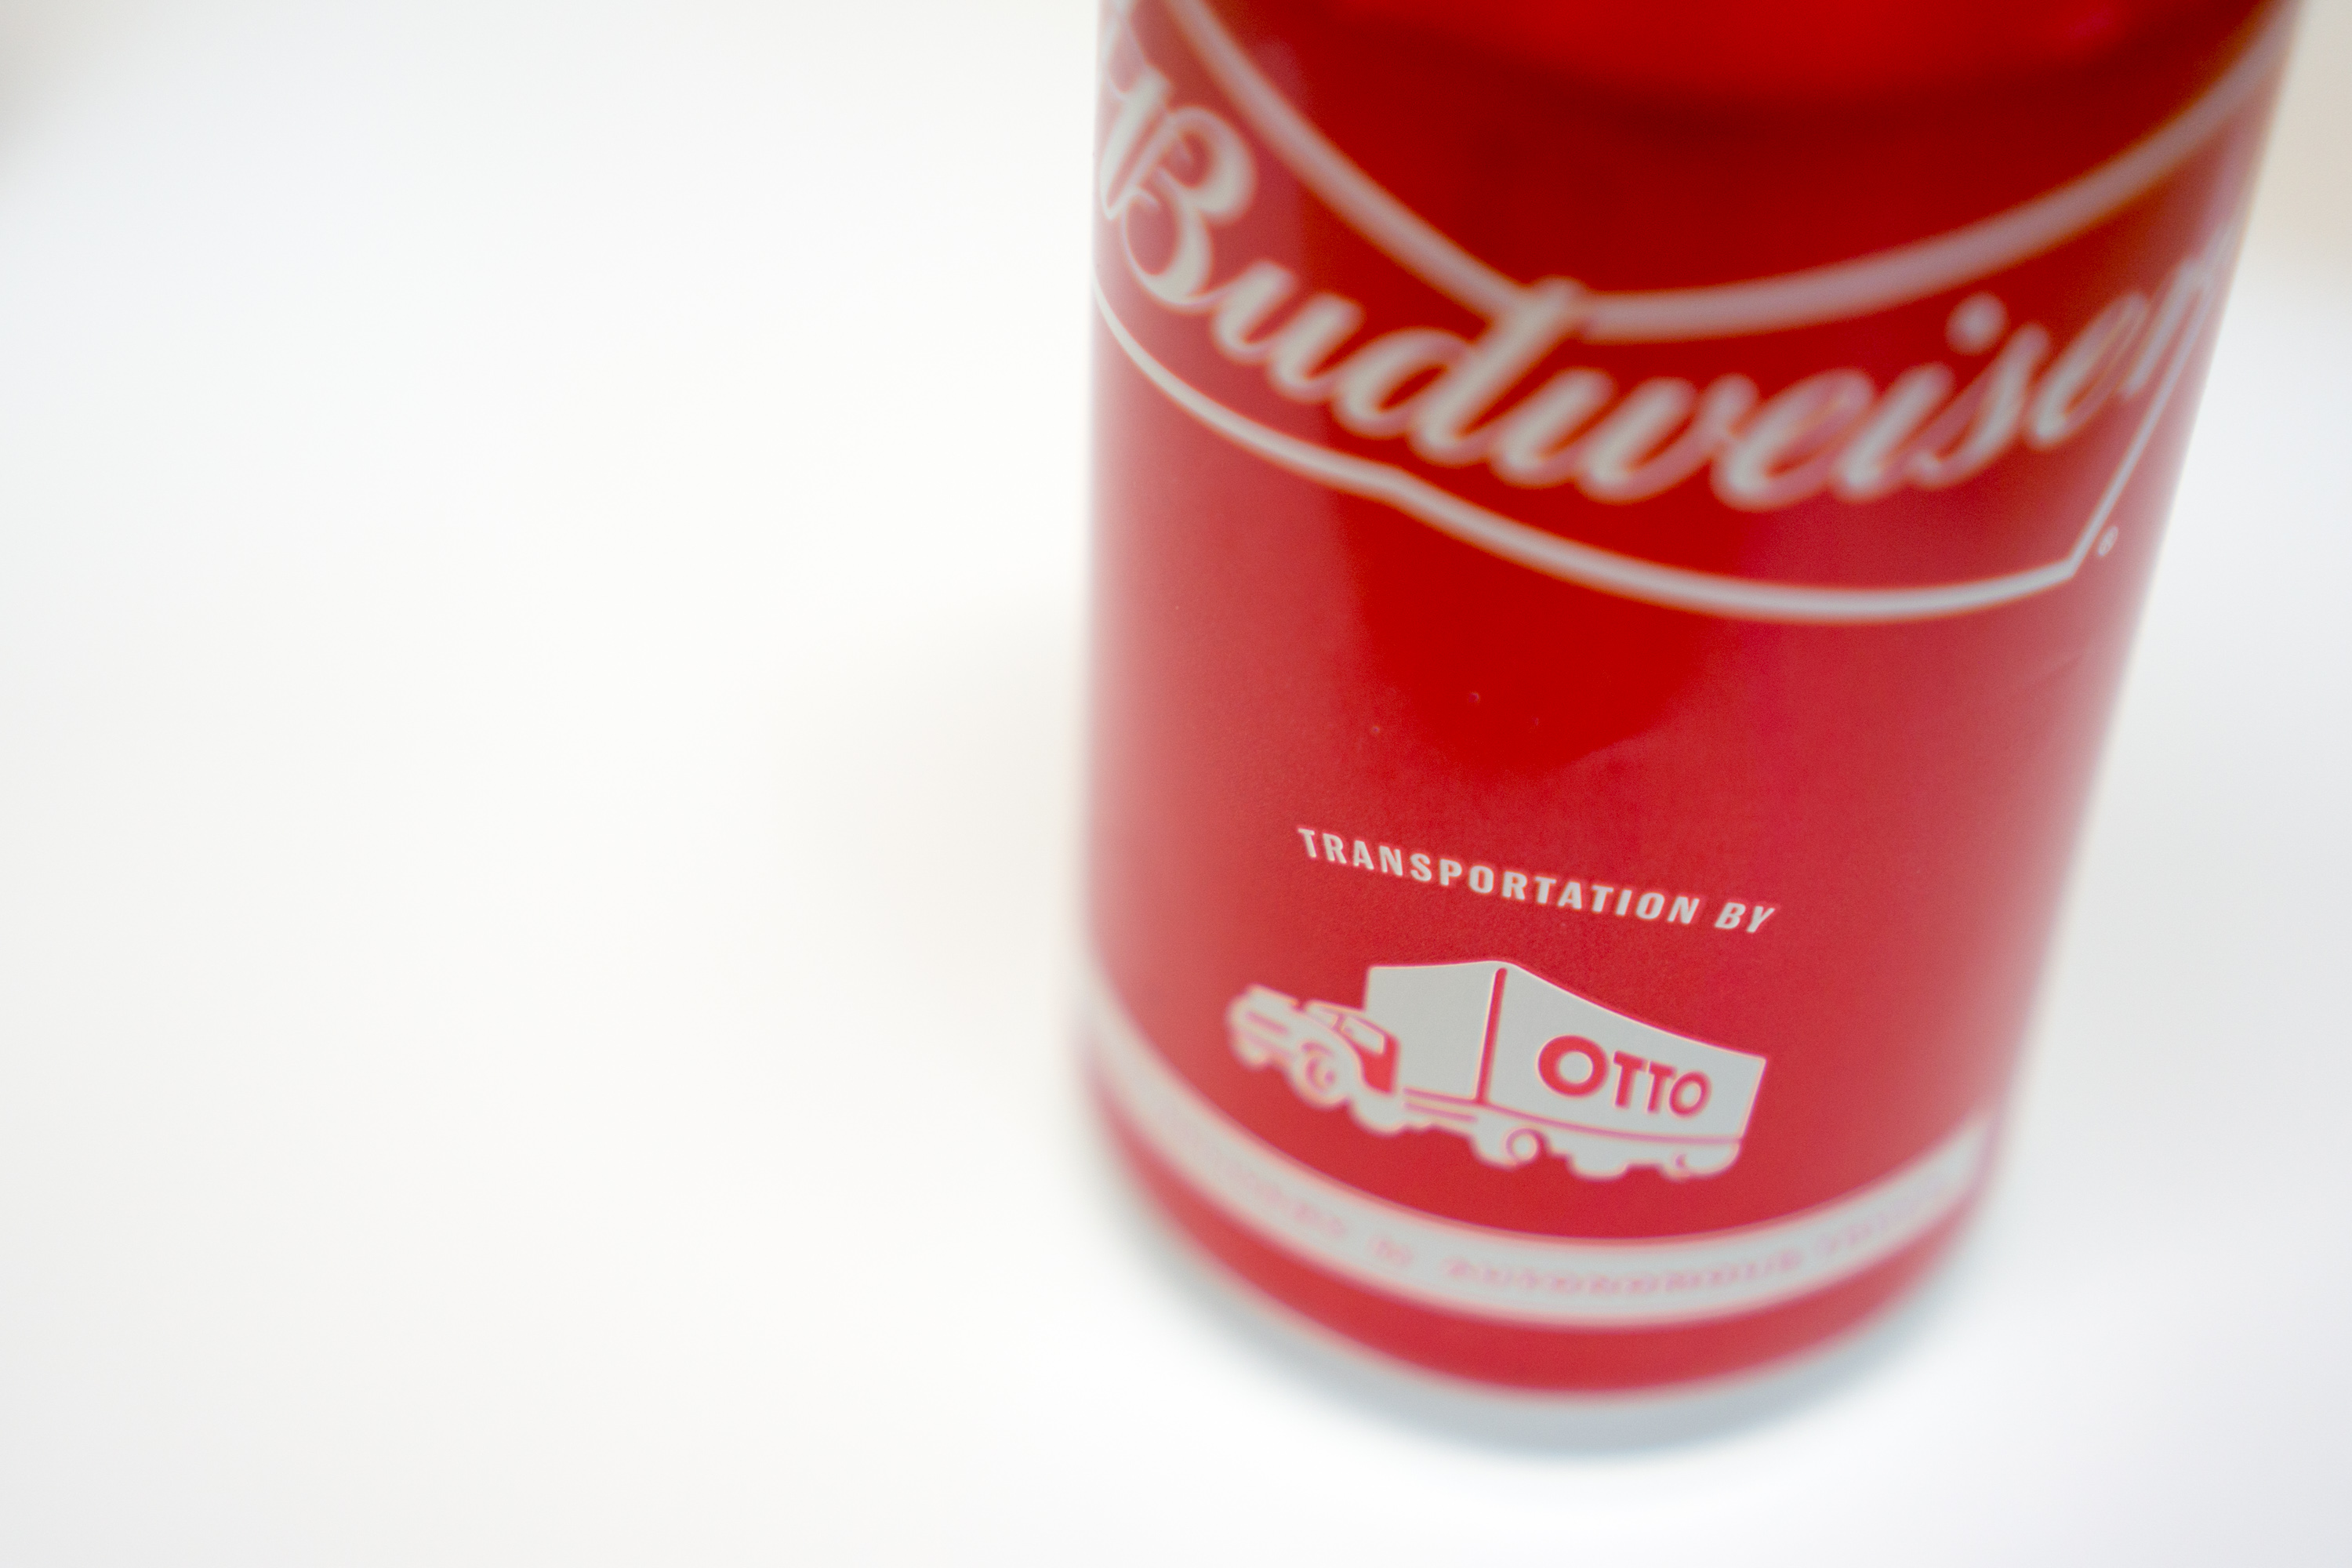 Photo: Budweiser Delivered By Otto, Robot Beer Truck